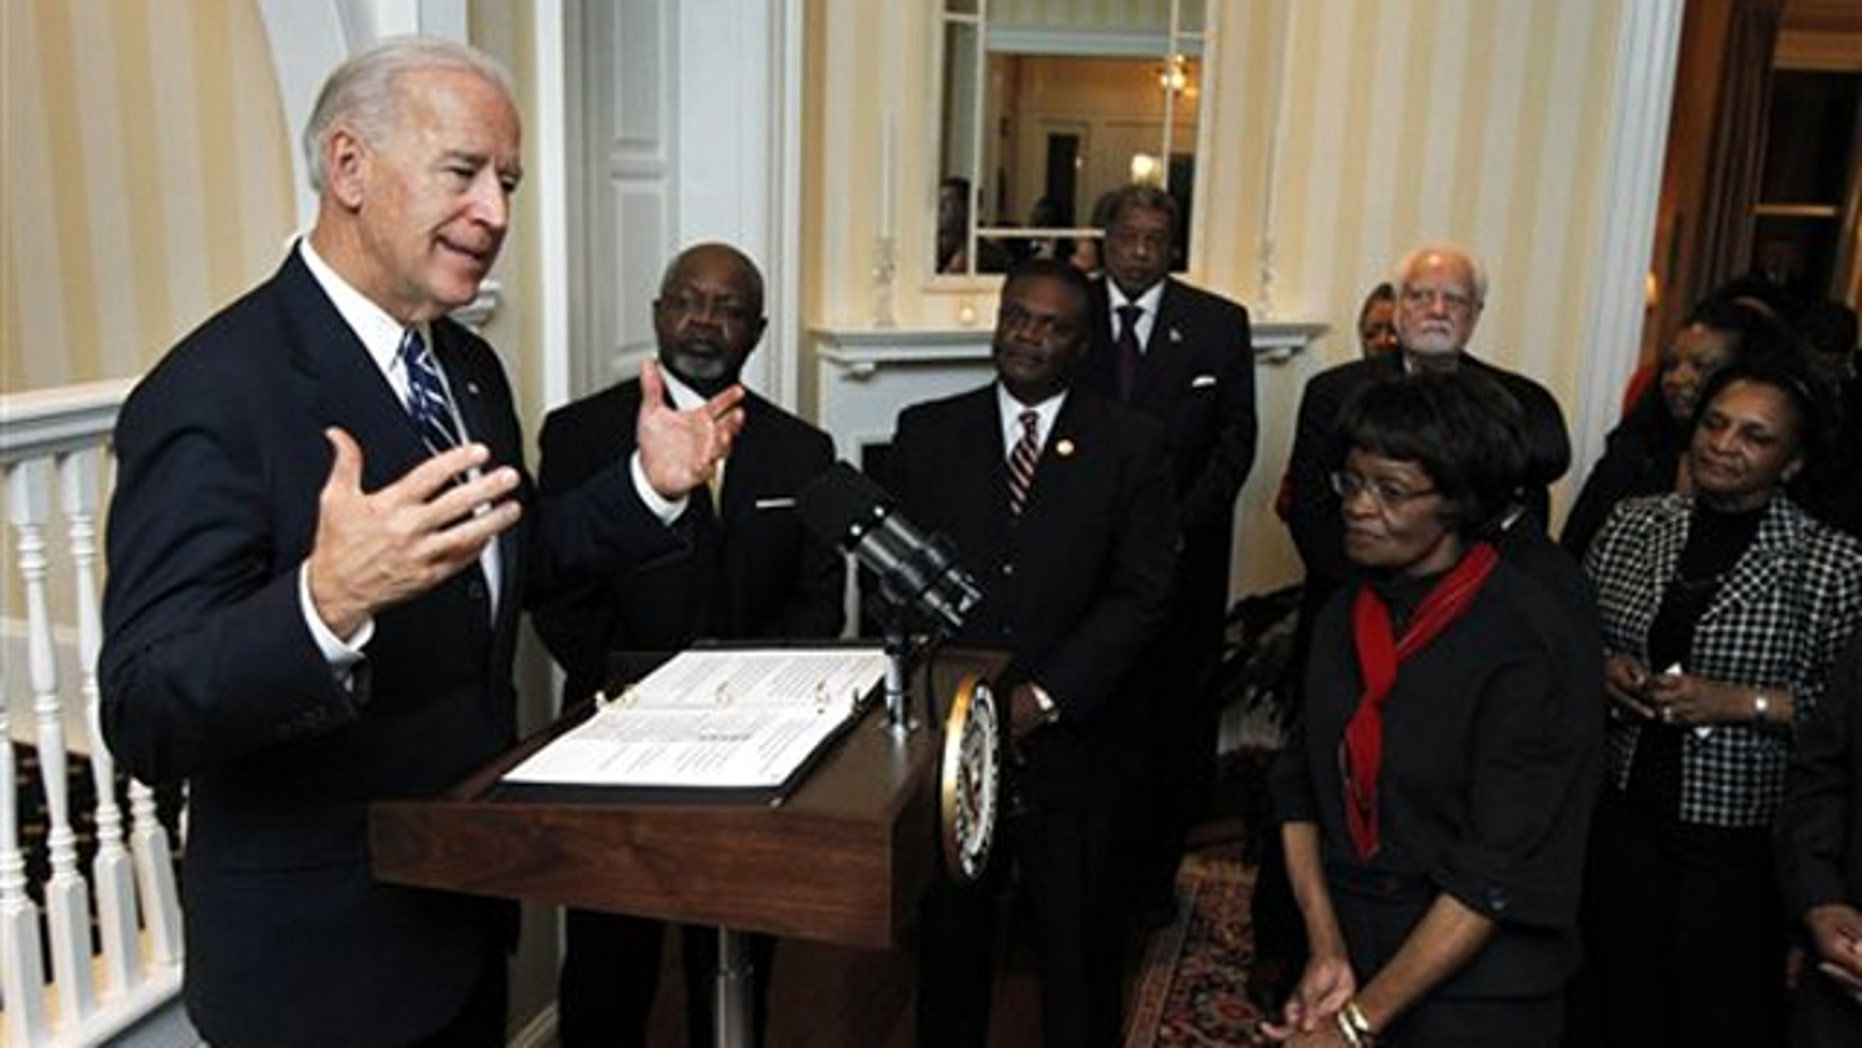 Vice President Biden speaks to guests in his official residence at the Naval Observatory in Washington Feb. 15 in honor of Black History Month.